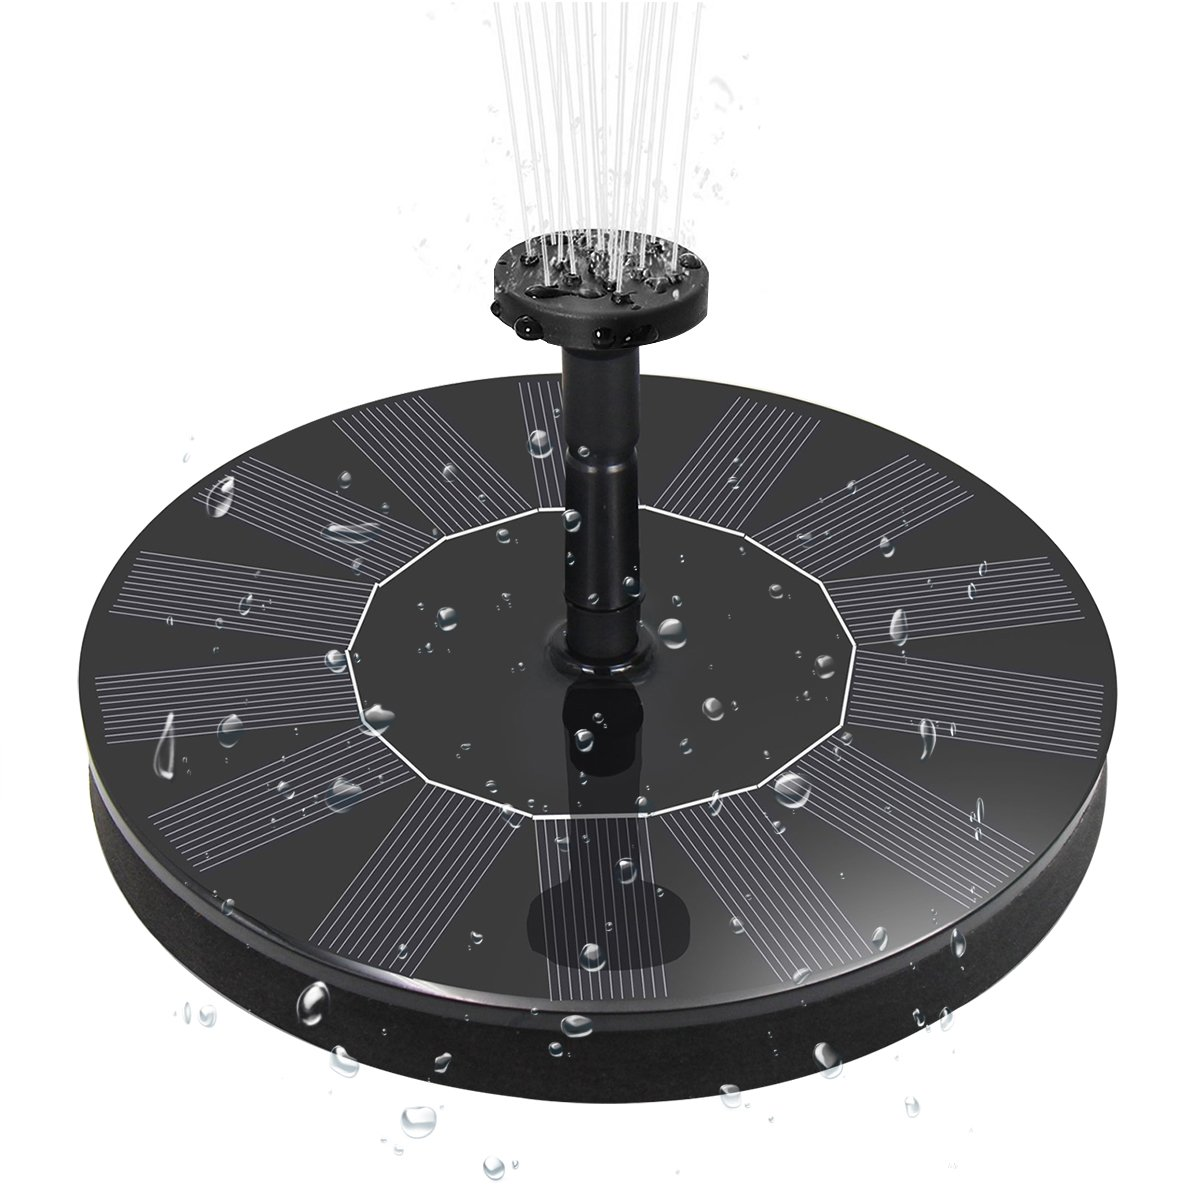 Kaipu Solar Fountain Pump with 4 Spray Heads, 1.4 W Excellent submersible water pump Panel Kit for Garden Birdbath, Pond Swimming Pool, Bird Bath, Small Pond, Garden and Lawn